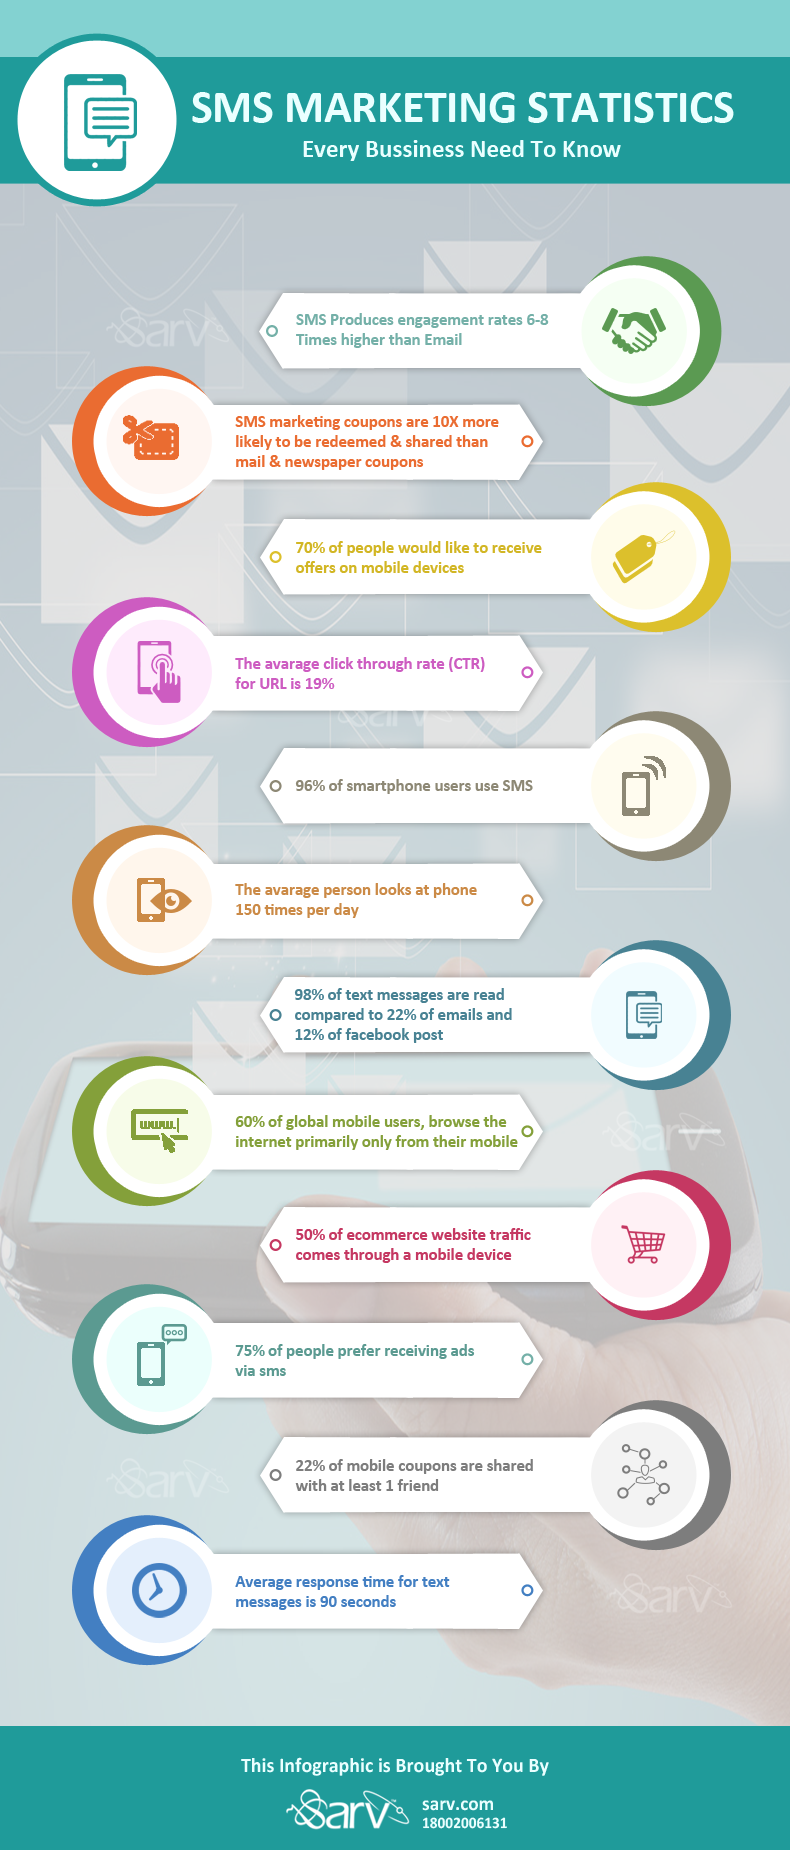 Some Impressive SMS Marketing Statistics: Every Business Need To